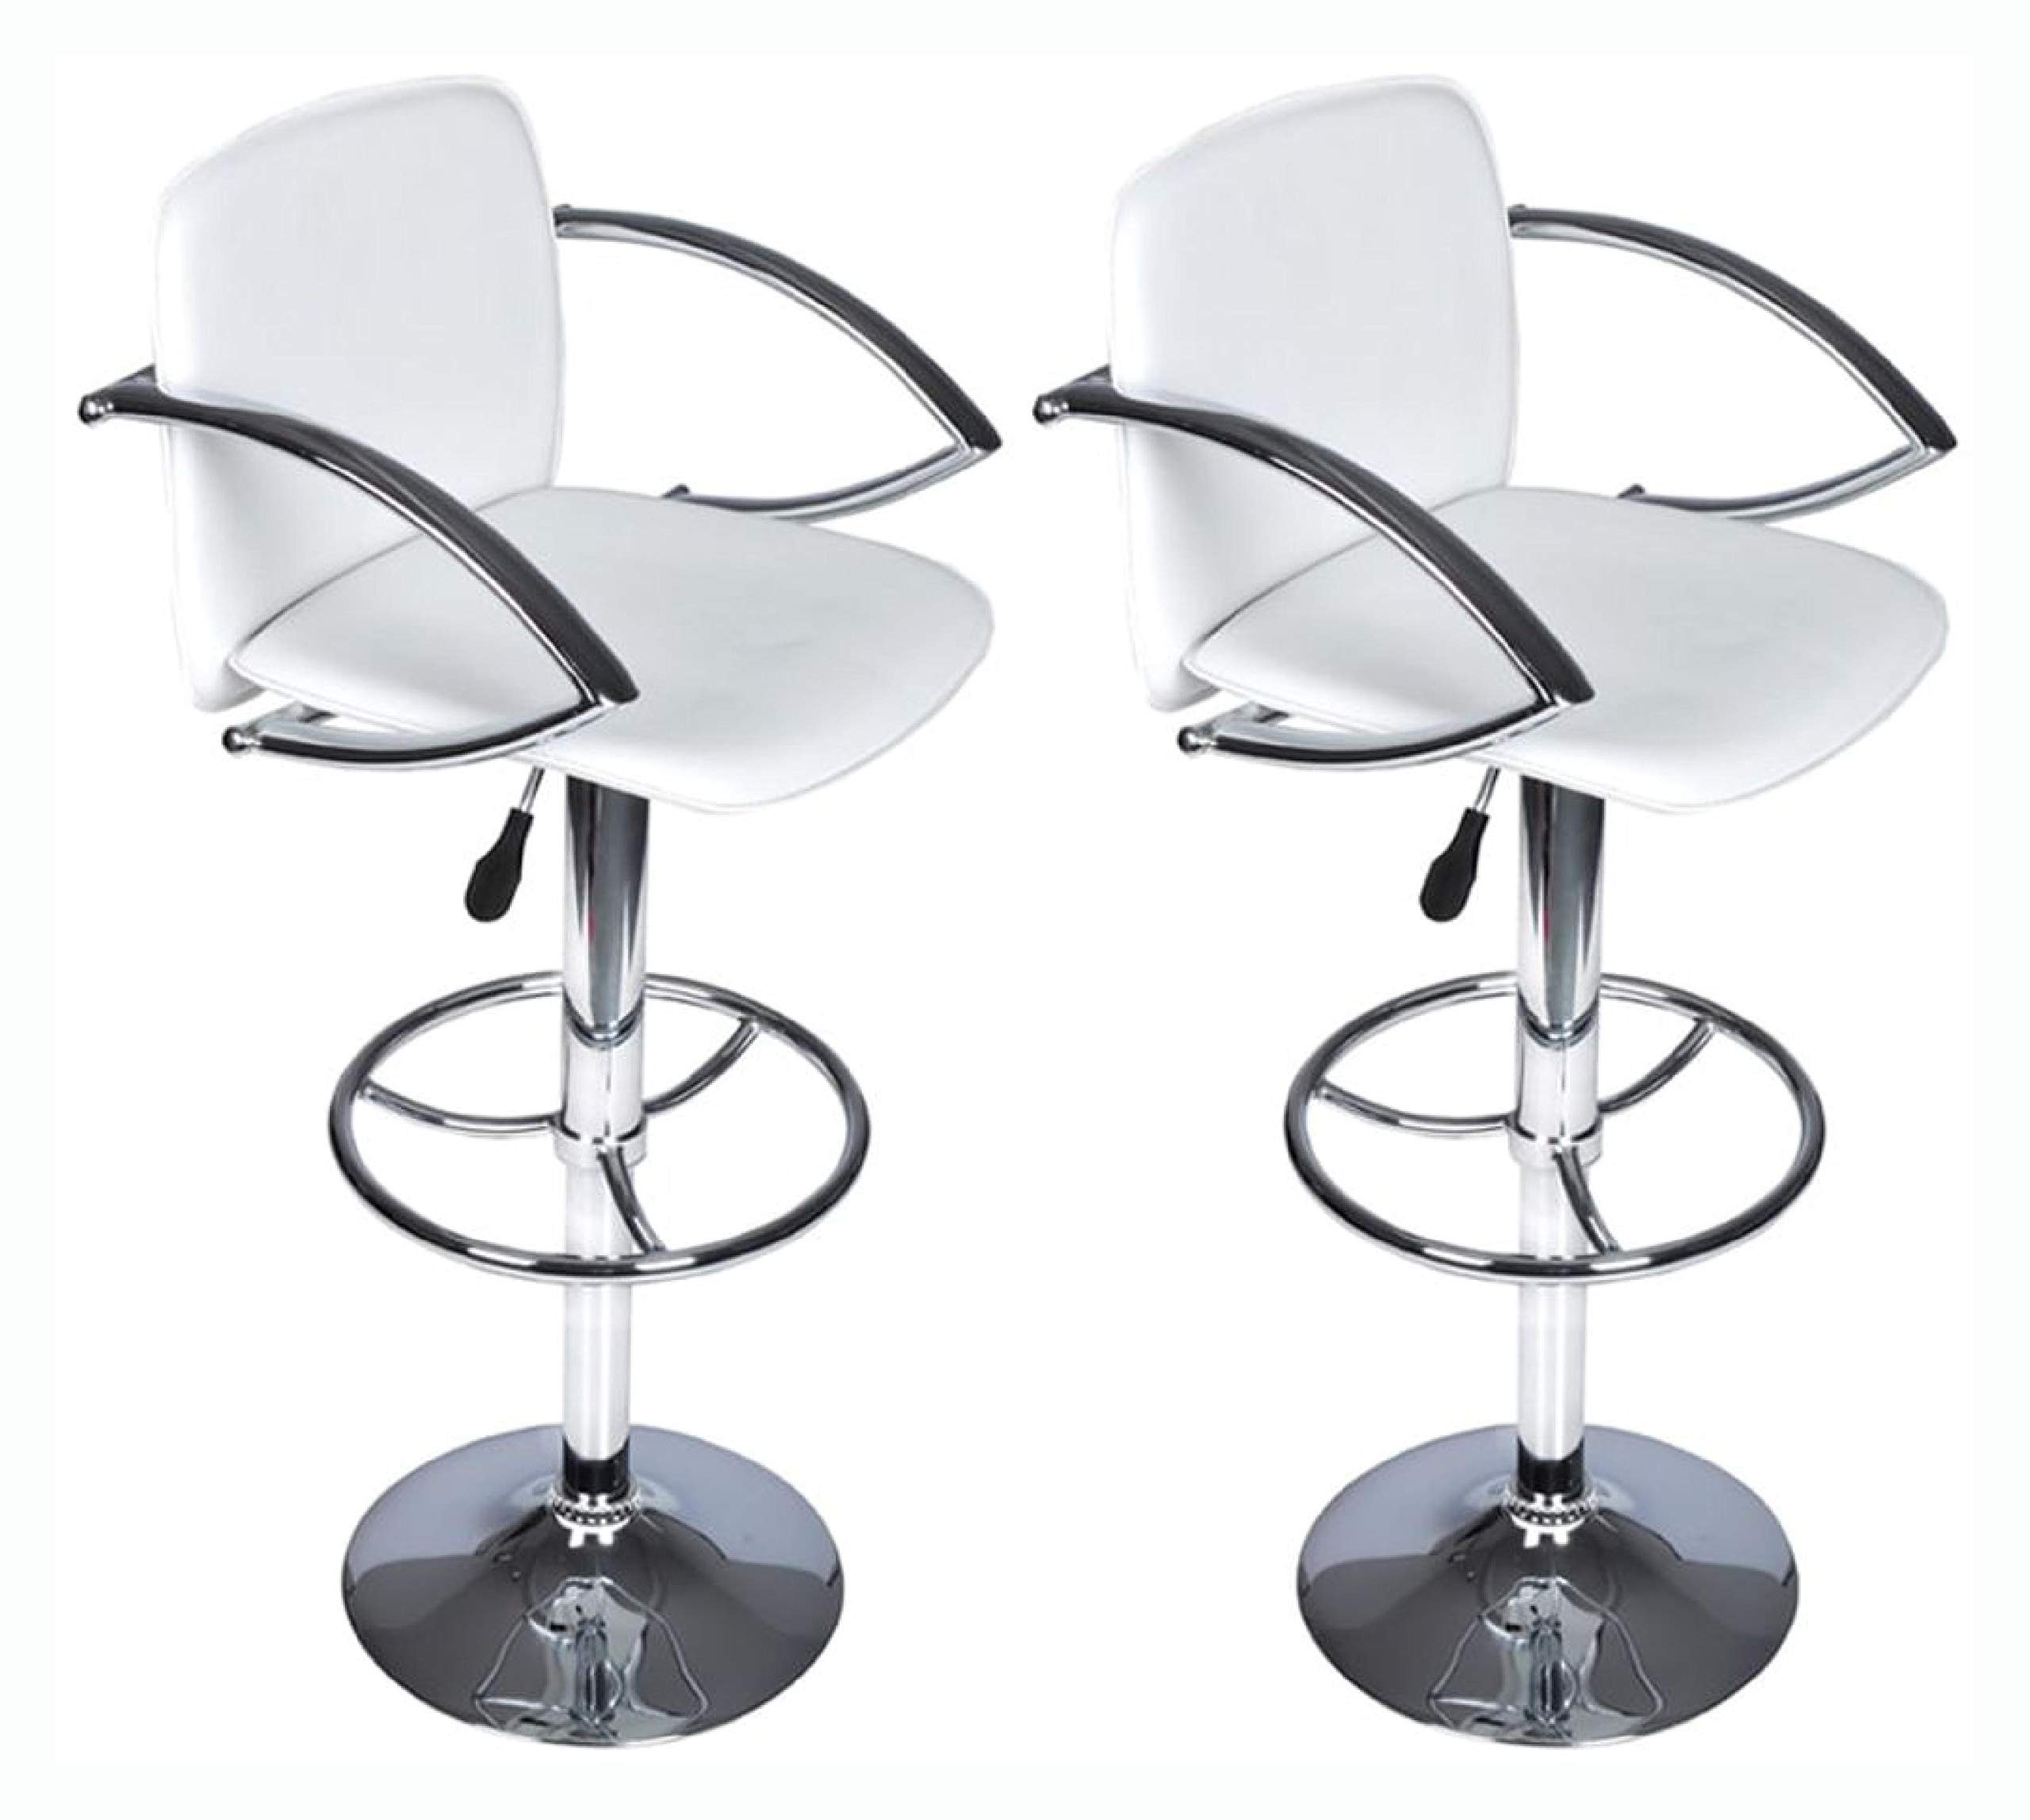 Table & Bar Stool, Set of 2 White Bar Stool with Round Footrest by HomyDelight